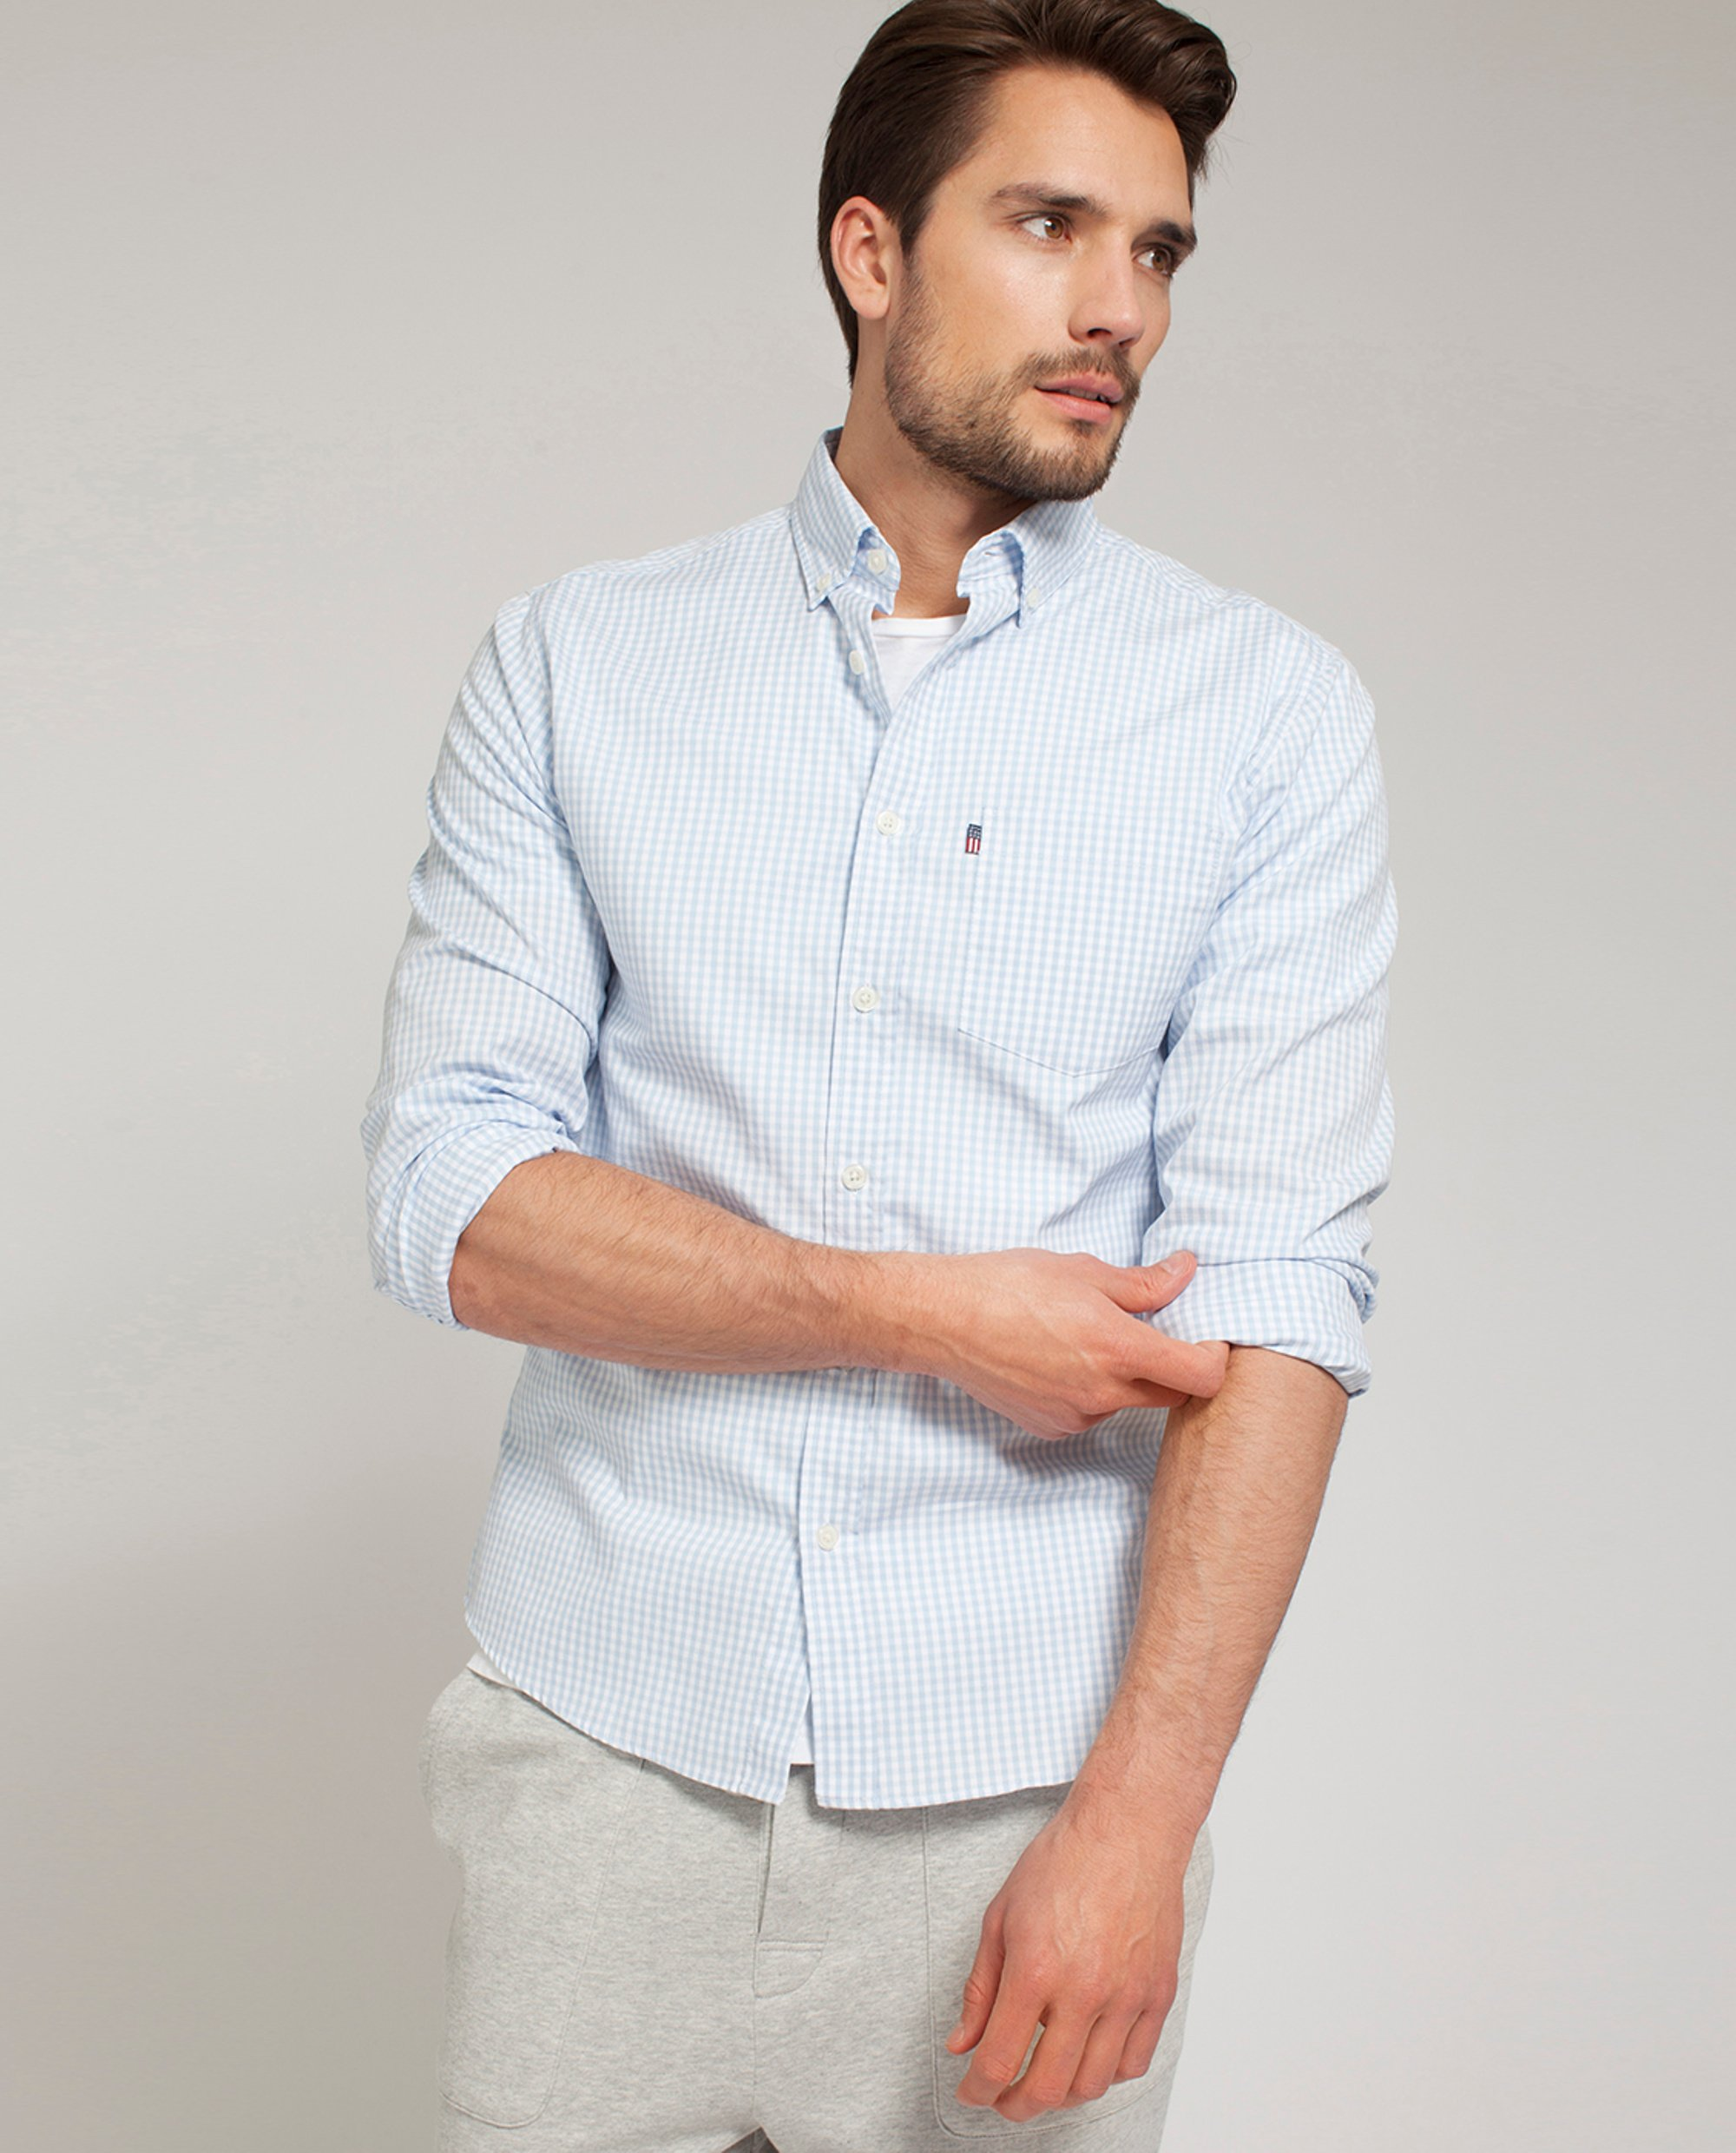 Peter Light Oxford Shirt, Light Blue/White